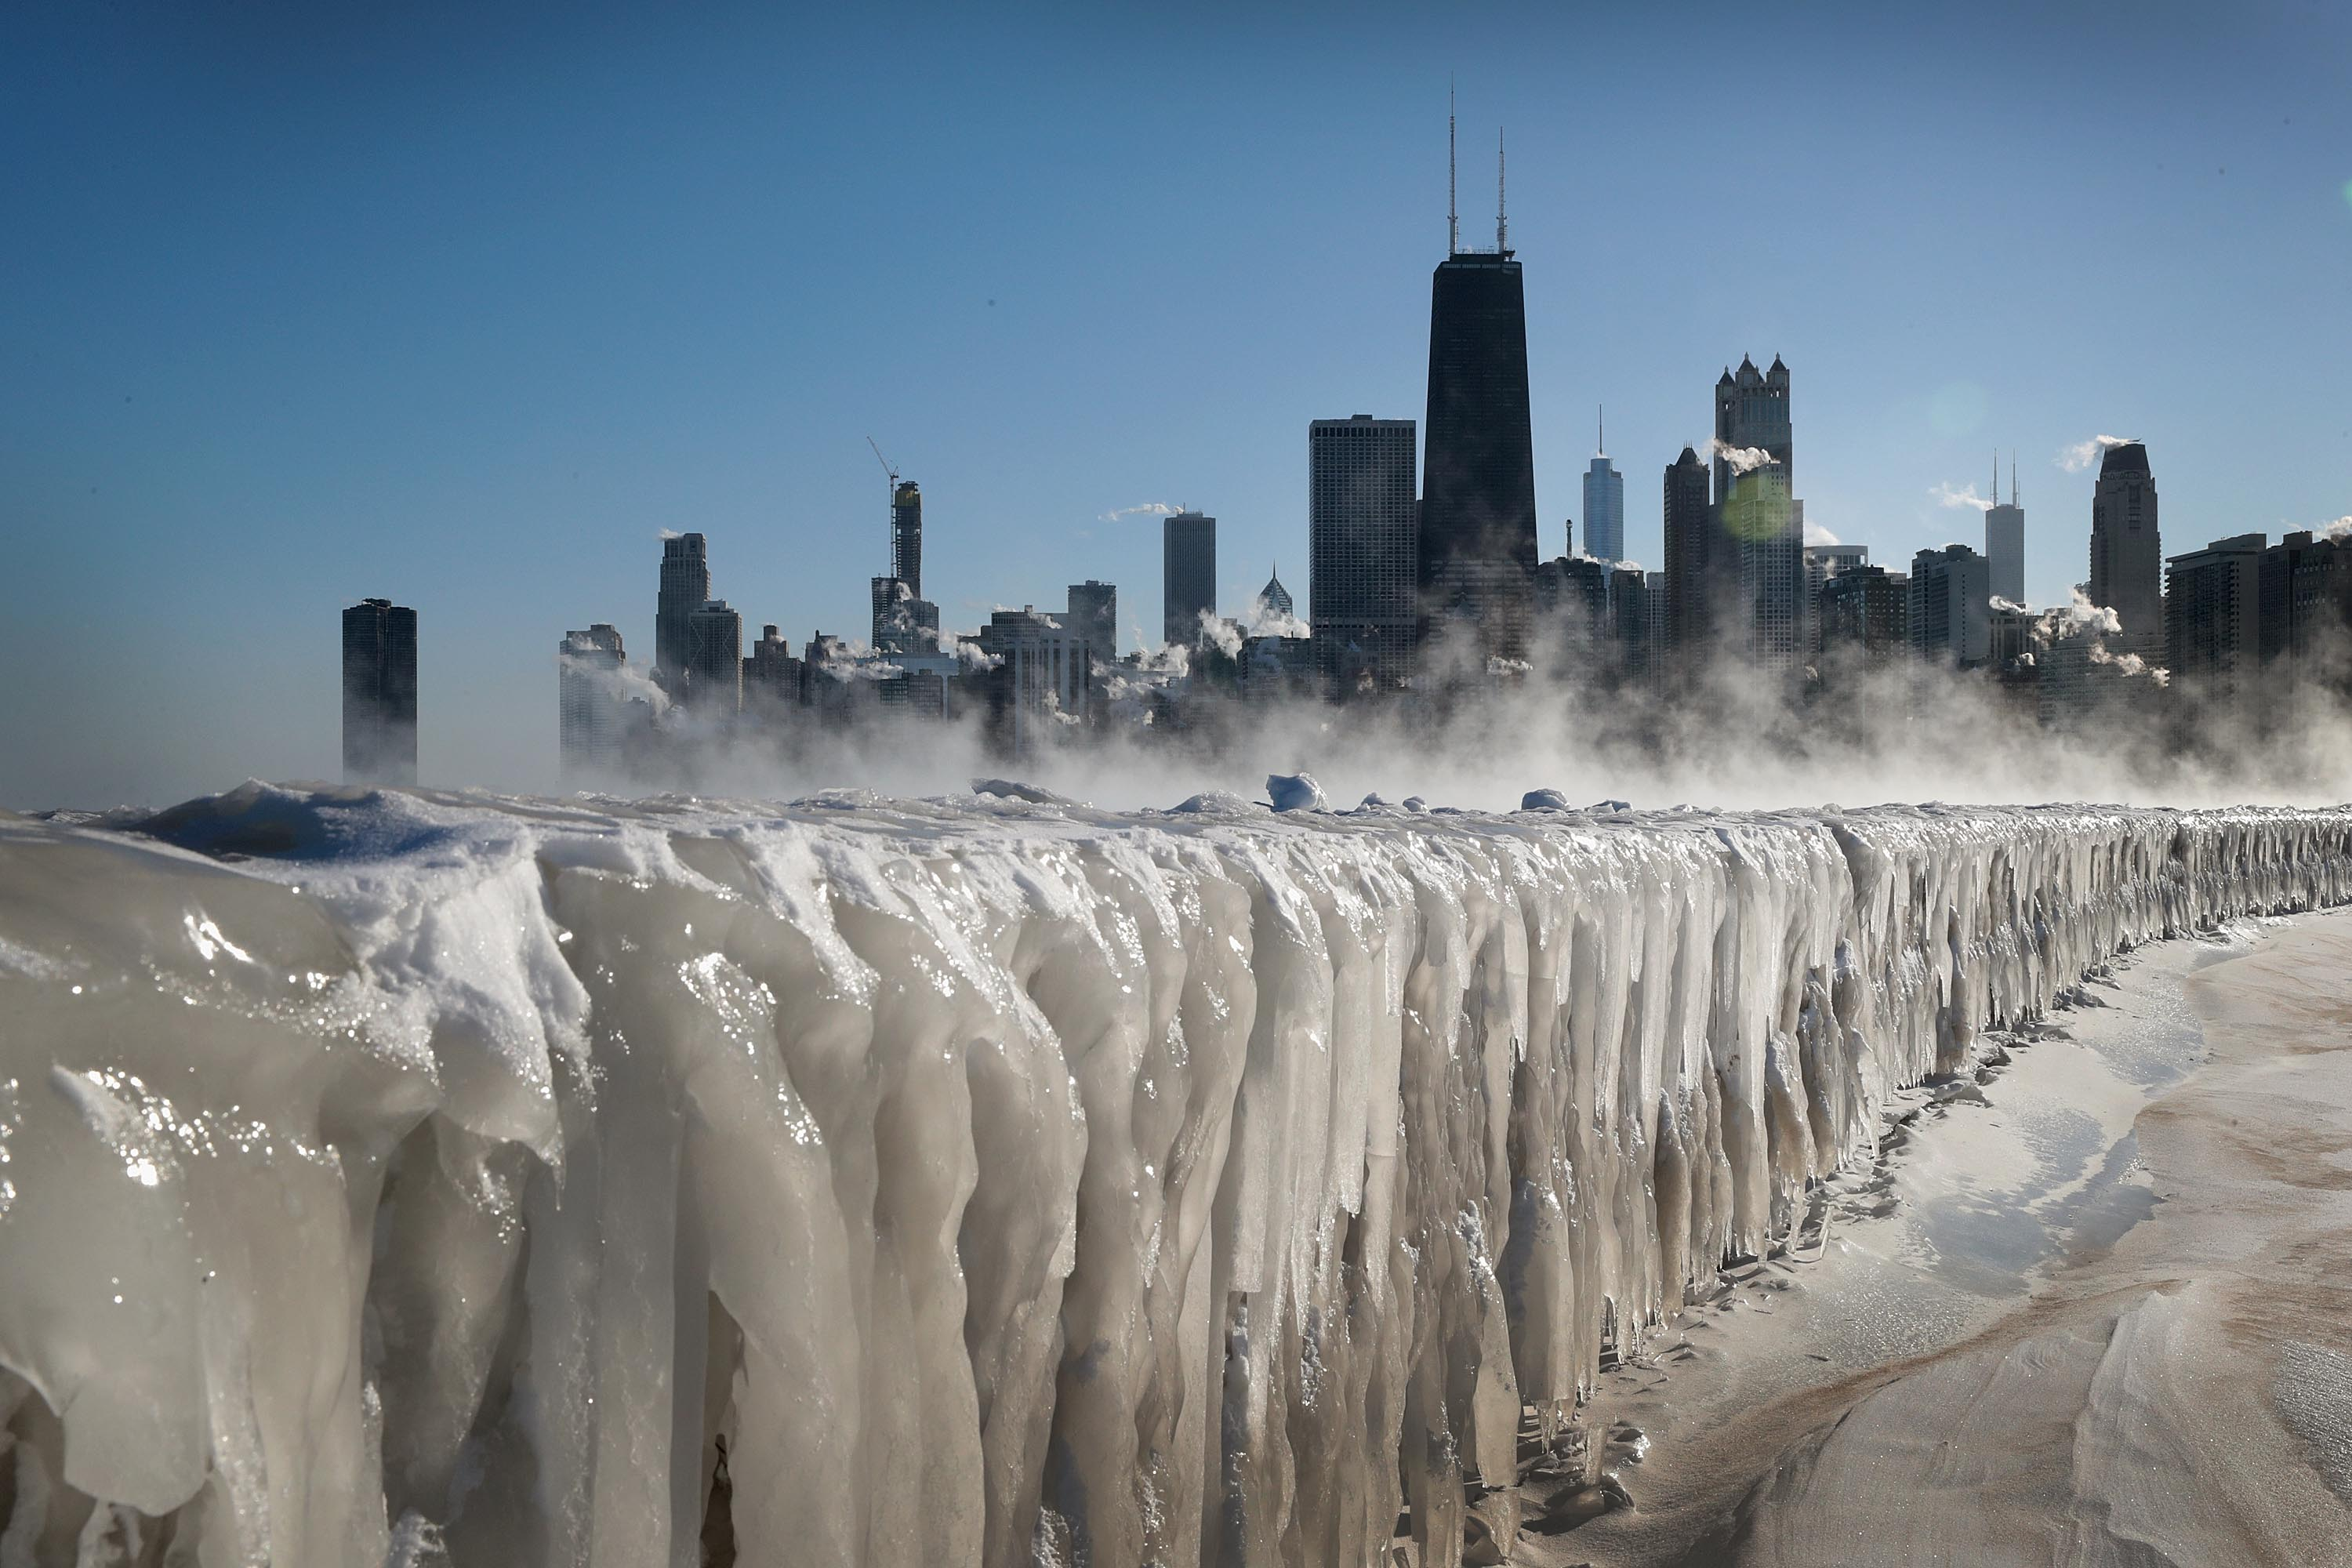 Ice covers the Lake Michigan shorelinein Chicago, Illinois. Businesses and schools have closed, Amtrak has suspended service into the city, more than a thousand flights have been cancelled and mail delivery has been suspended as the city copes with record-setting low temperatures. (Scott Olson/Getty Images)